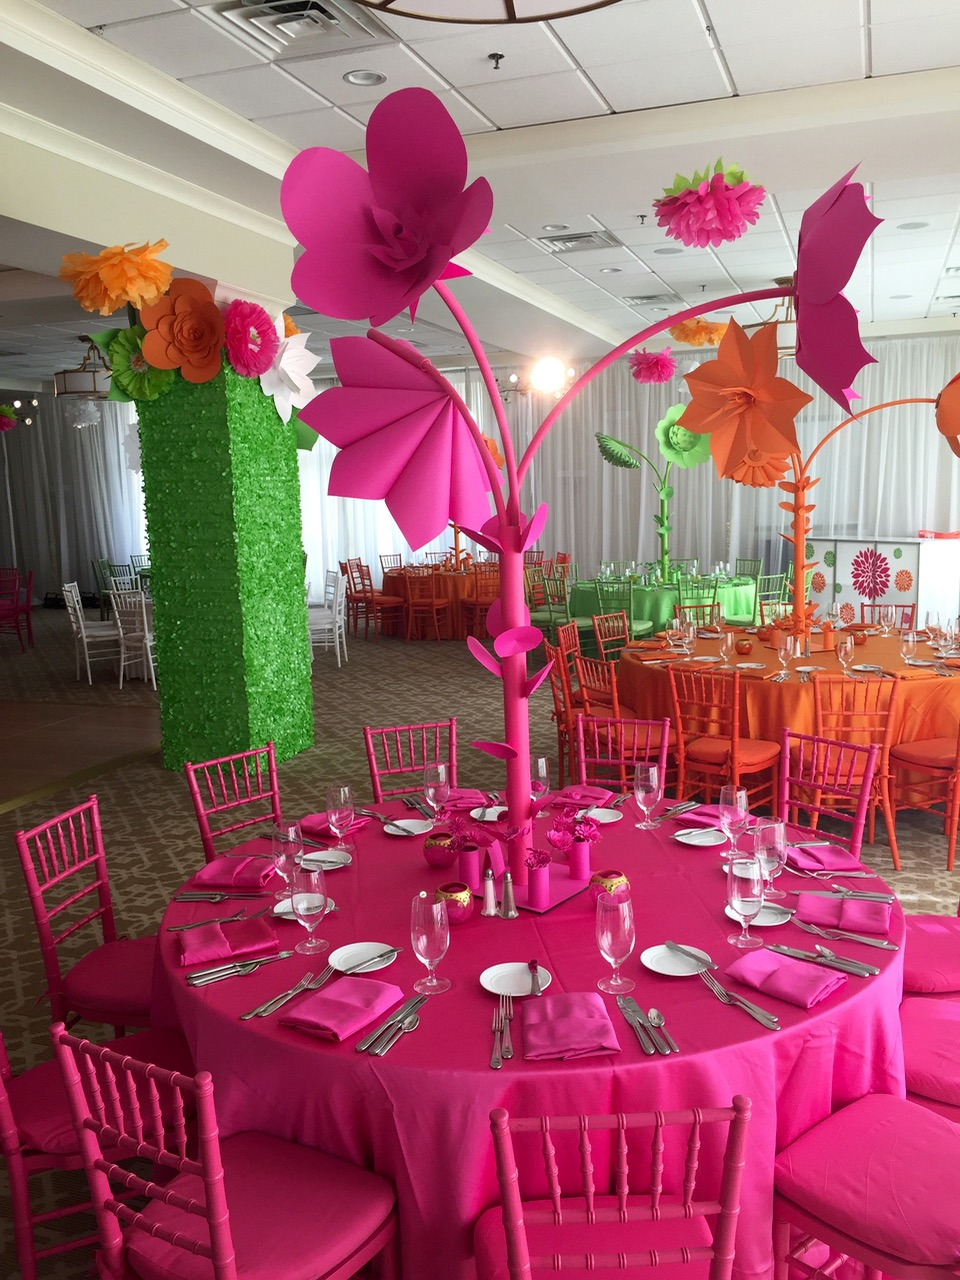 Paper Flower Centerpiece Pink Orange Green Color Scheme Bat Mitzvah Decor Crestmont Country Club - Eggsotic Events NJ NYC Event Design Custom Decor  - 1.jpg